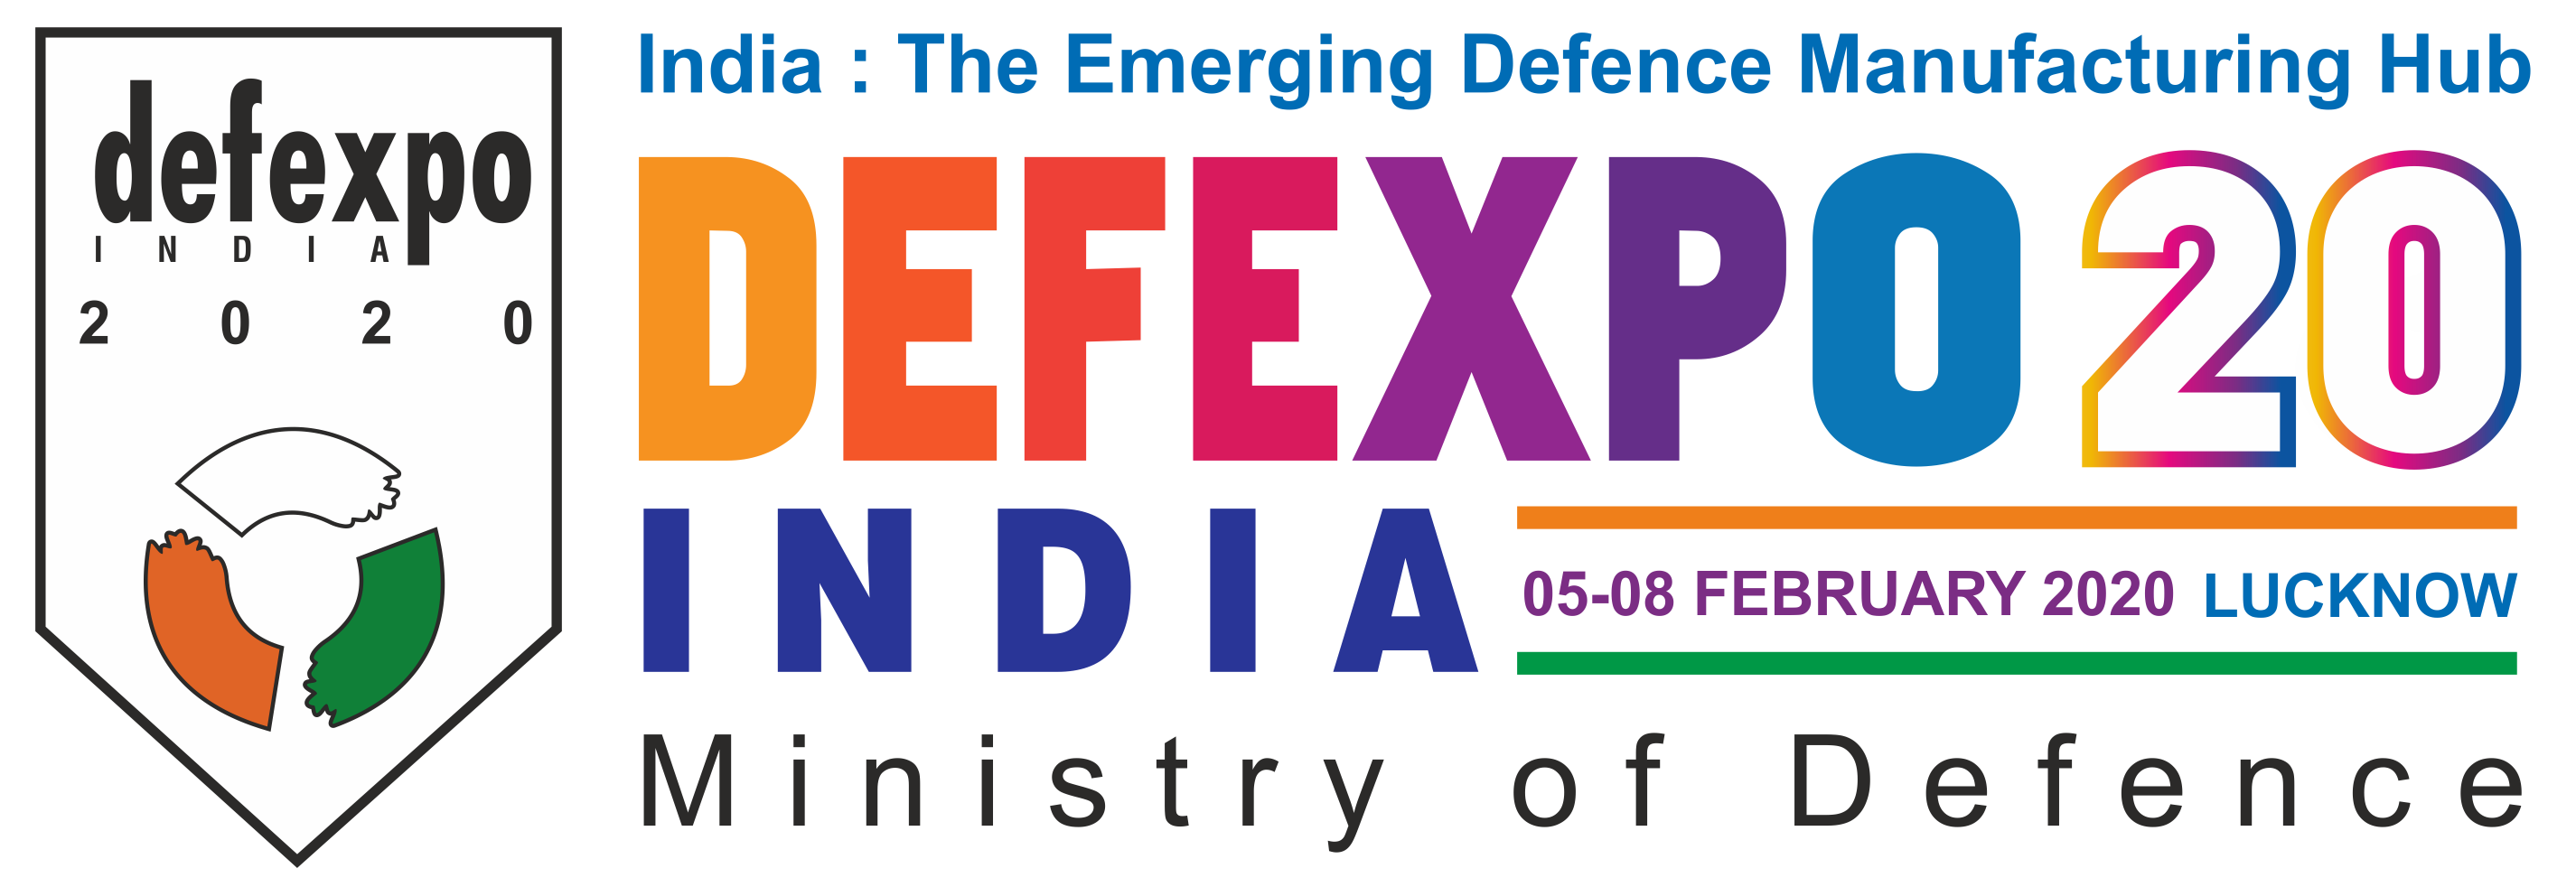 OFFICIAL MEDIA ASSOCIATE PARTNER: DEFEXPO INDIA 2020 SPECIAL COLLECTORS' ISSUE: FEBRUARY 2020